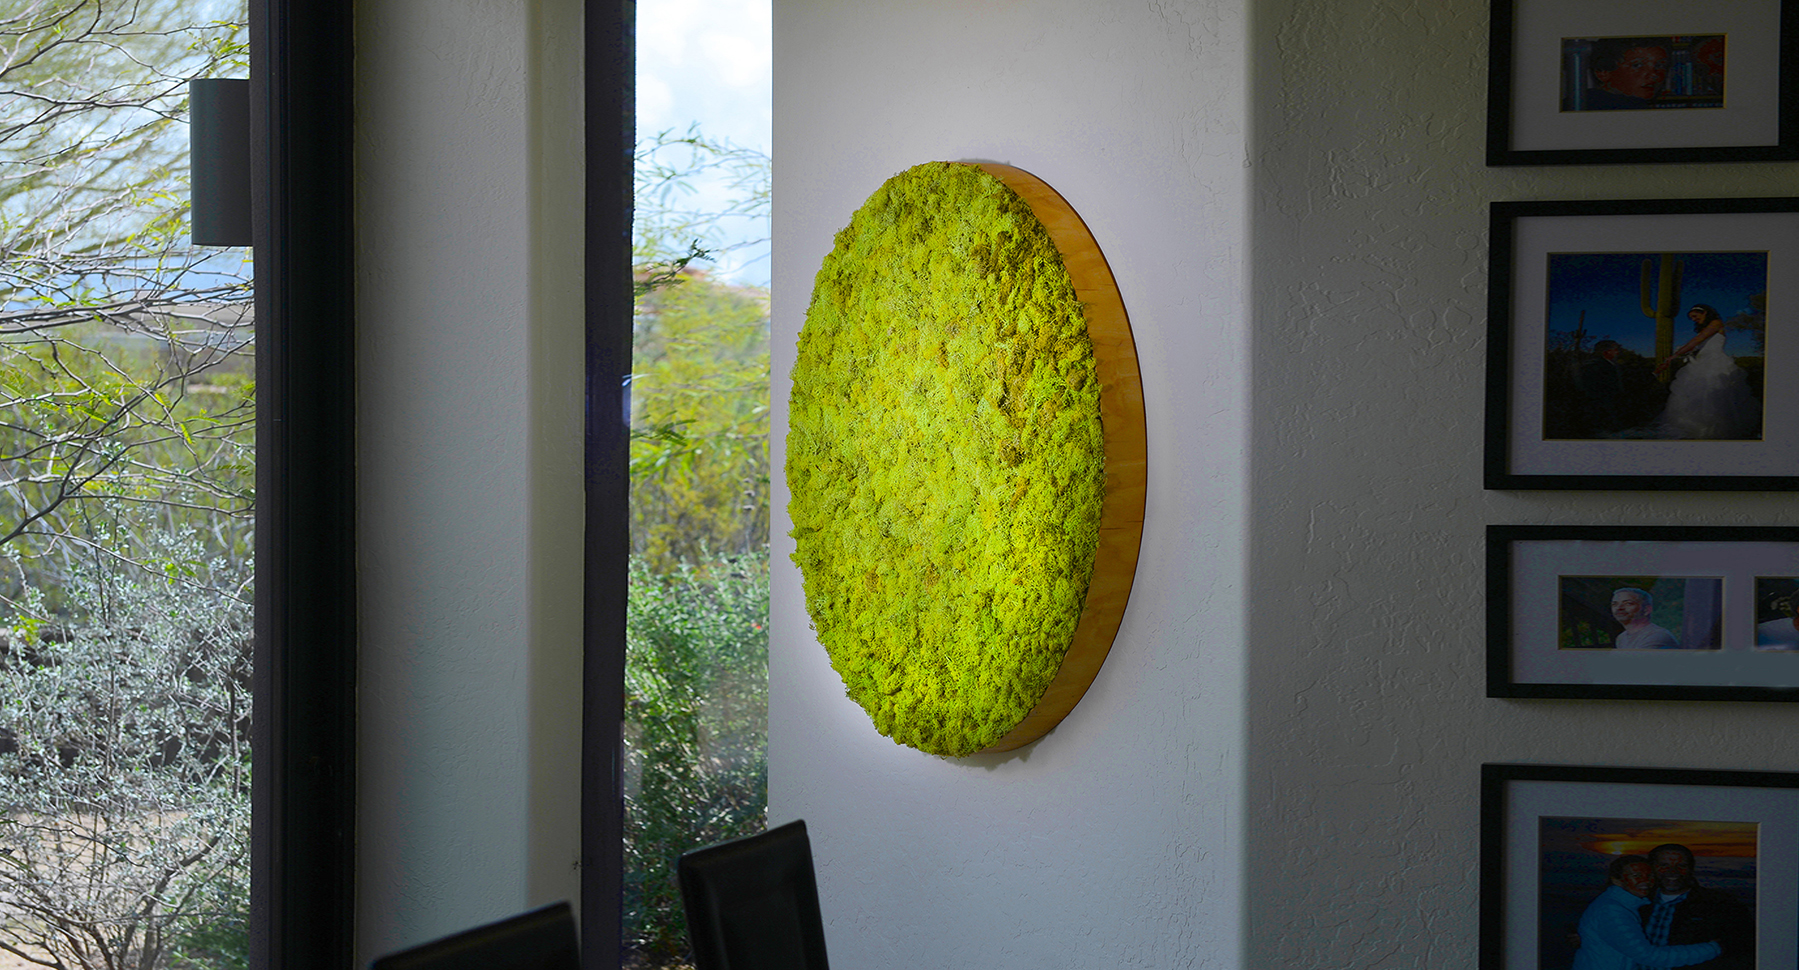 Exceptionnel MossWallArt Pieces For Sale Online U2013 Best Living Artwork For Home